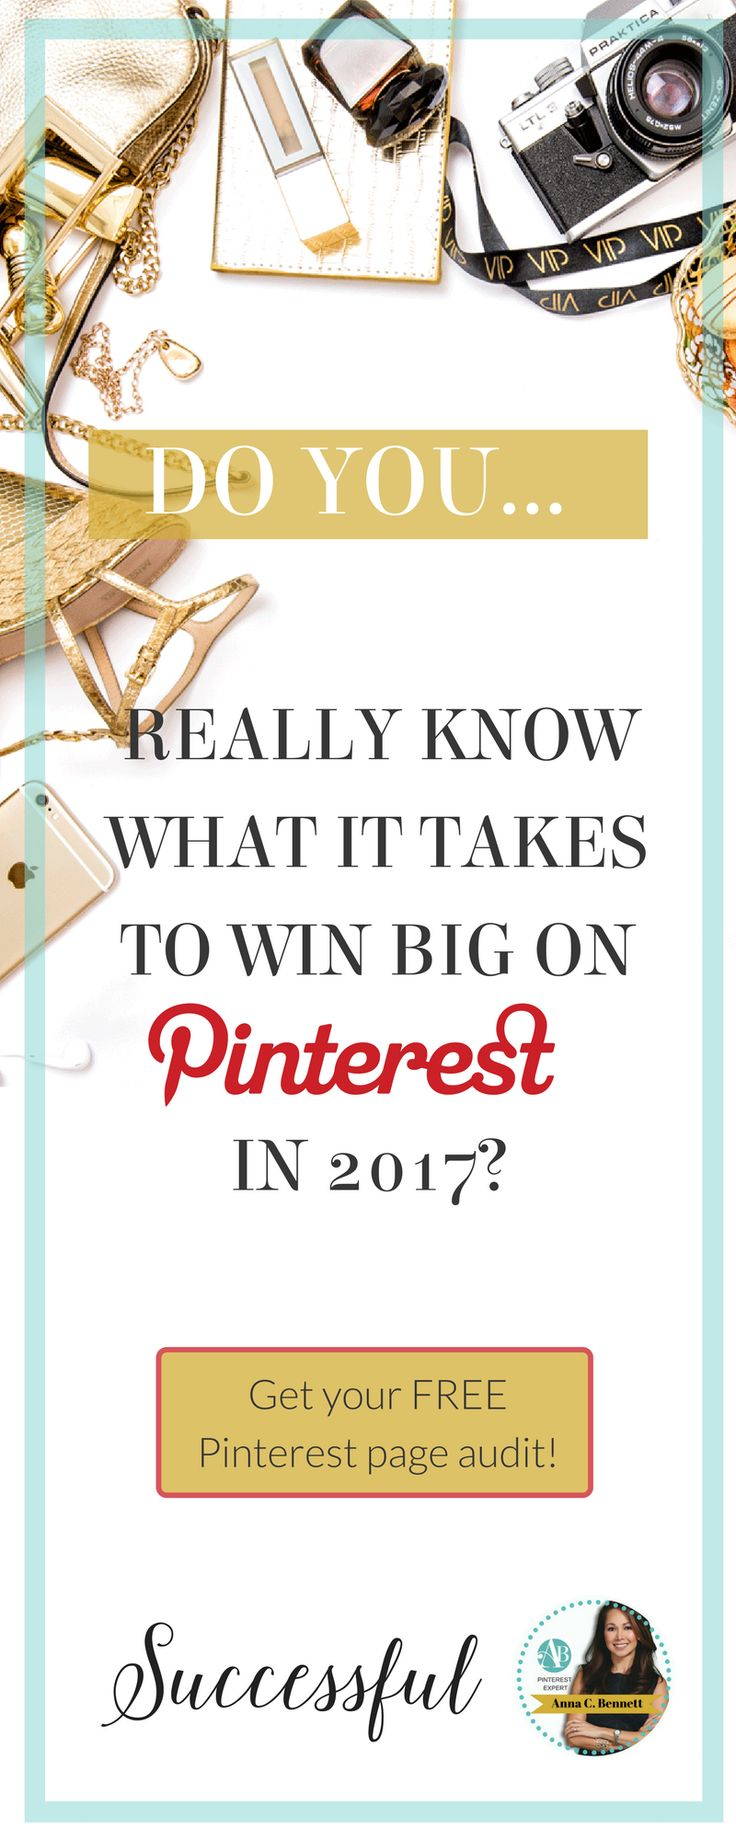 Download Pinterest Strategy Free Template | Click here to find out how to get your FREE Pinterest Marketing Audit from Pinterest Expert Anna Bennett https://www.whiteglovesocialmedia.com/pinterest-consultant